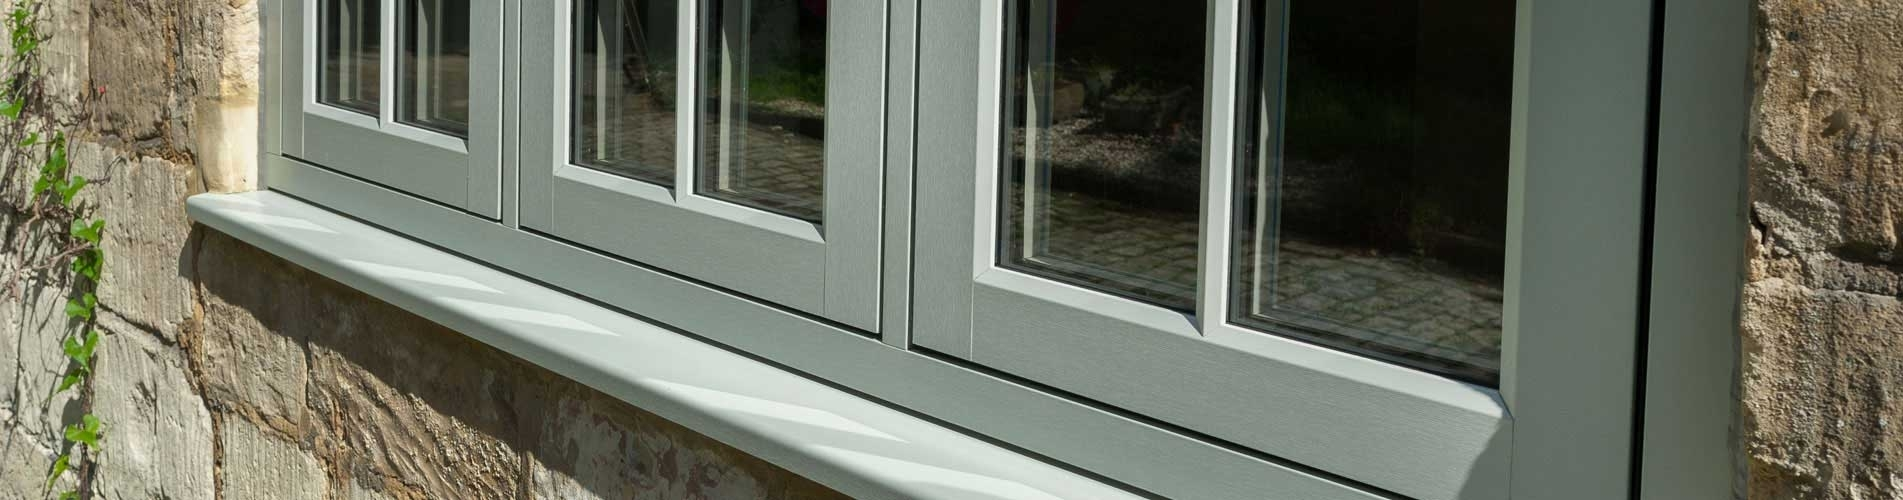 Bespoke uPVC Windows Denmead